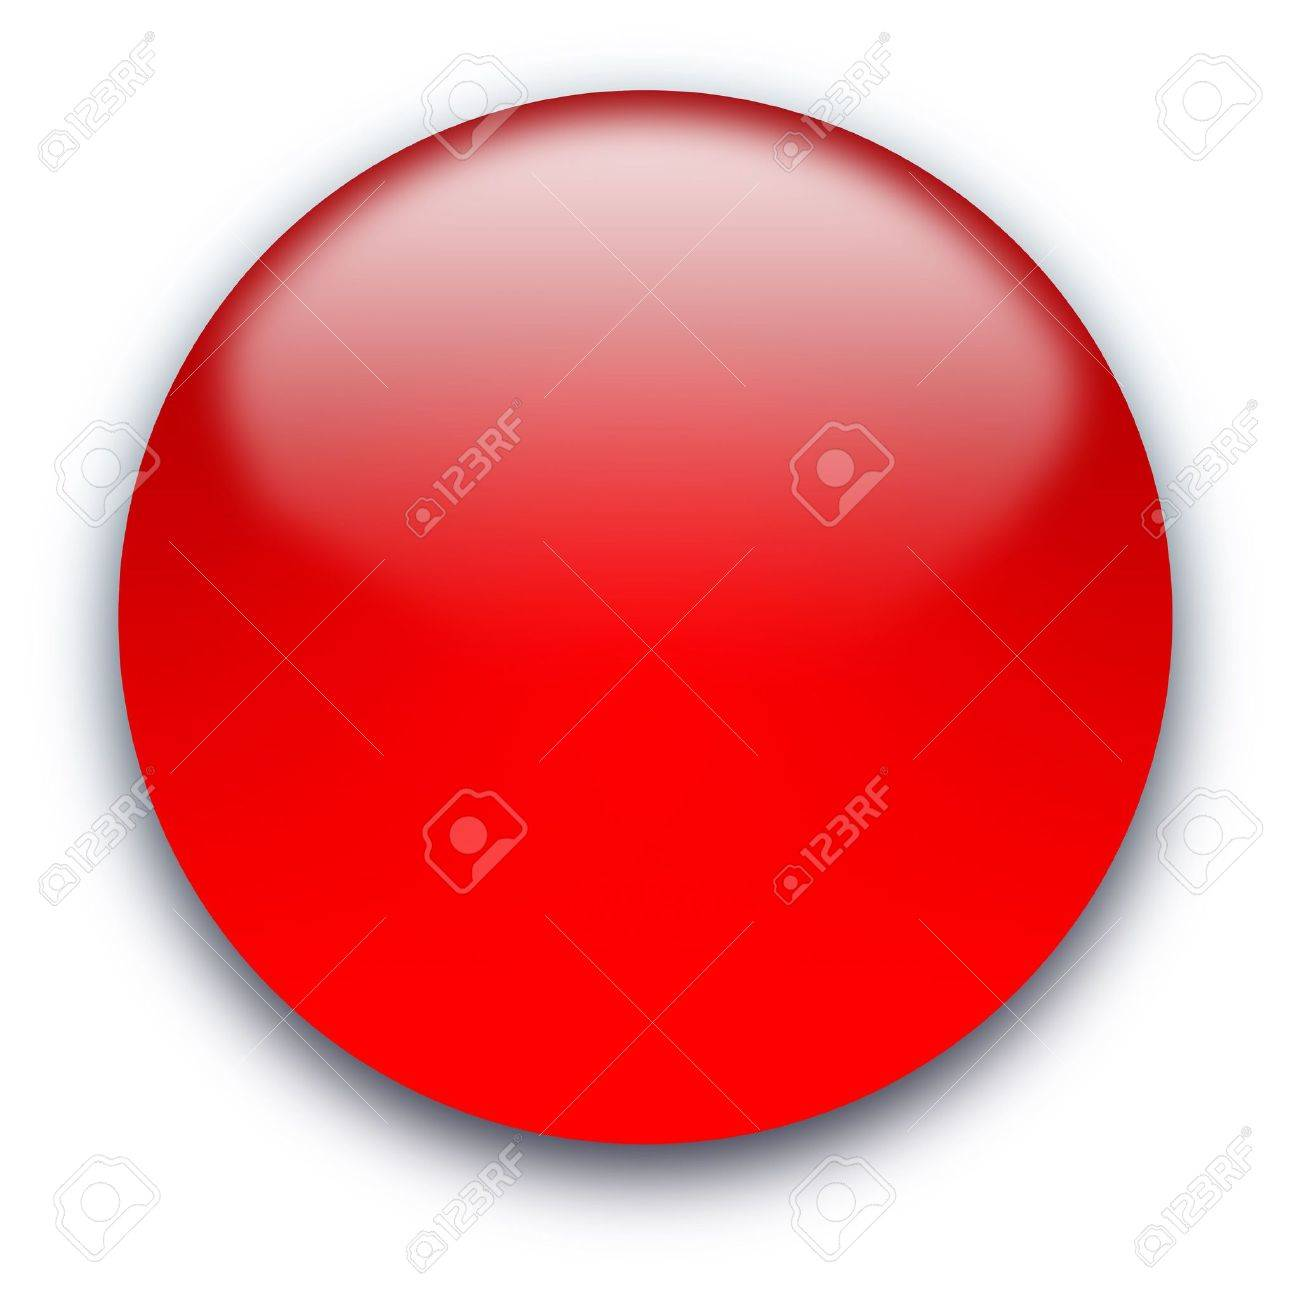 Glossy round empty button isolated over white background Stock Photo - 5243039